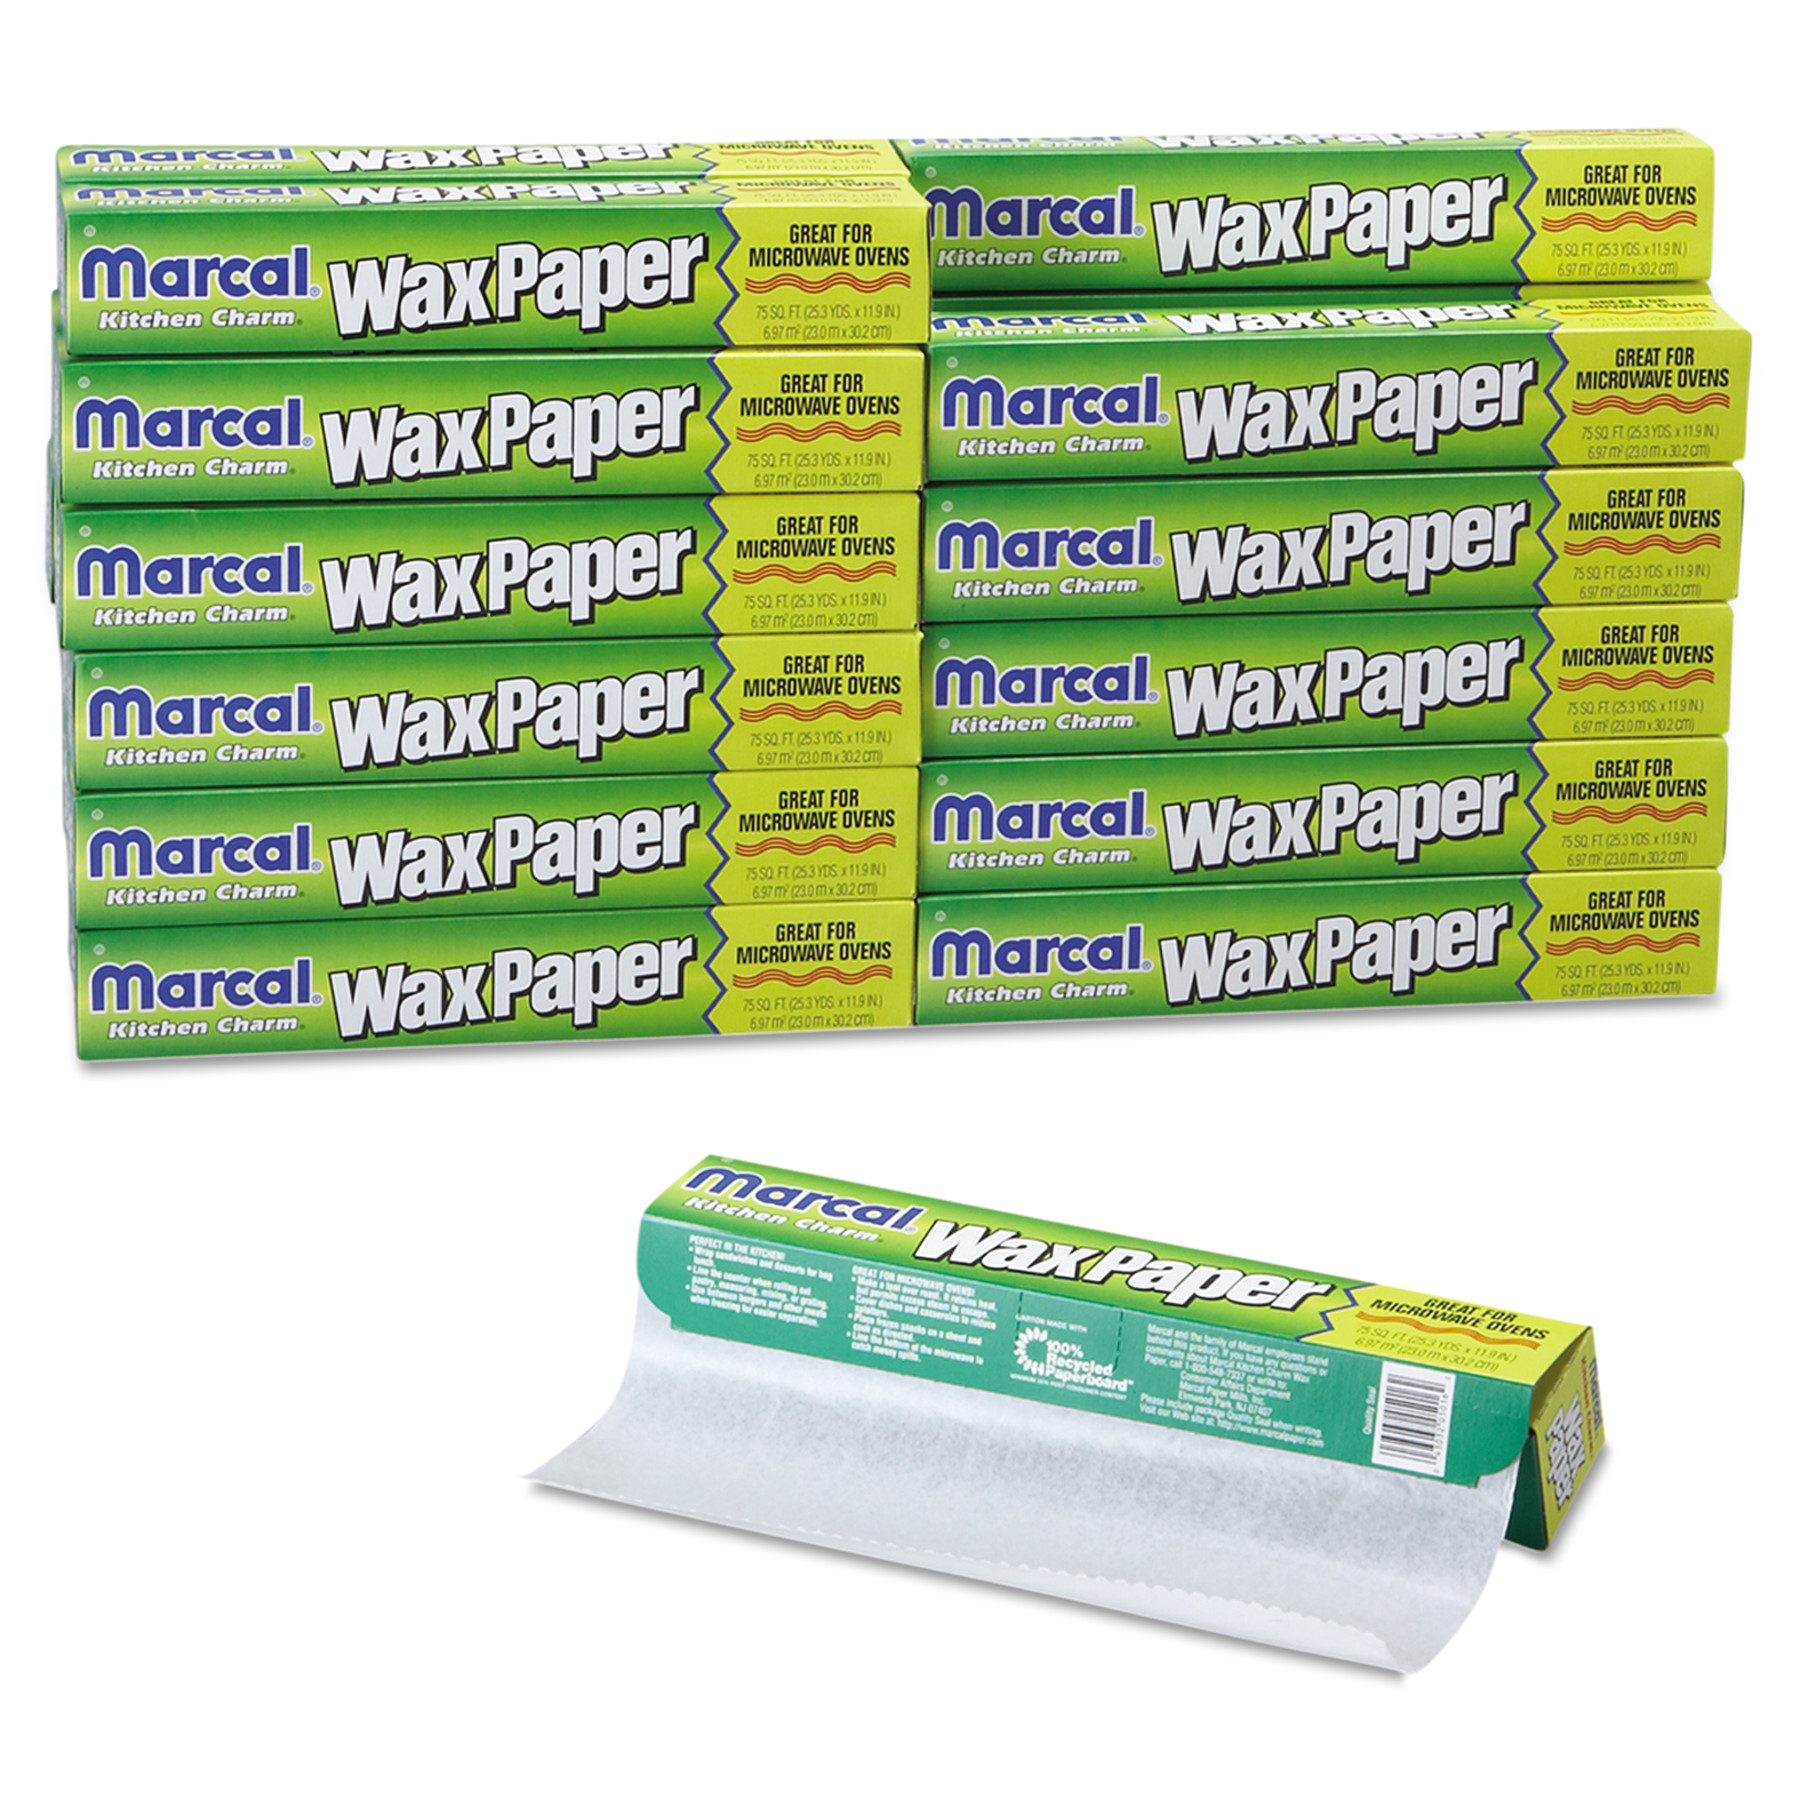 Marcal Kitchen Charm White Wax Paper Rolls, 24 count